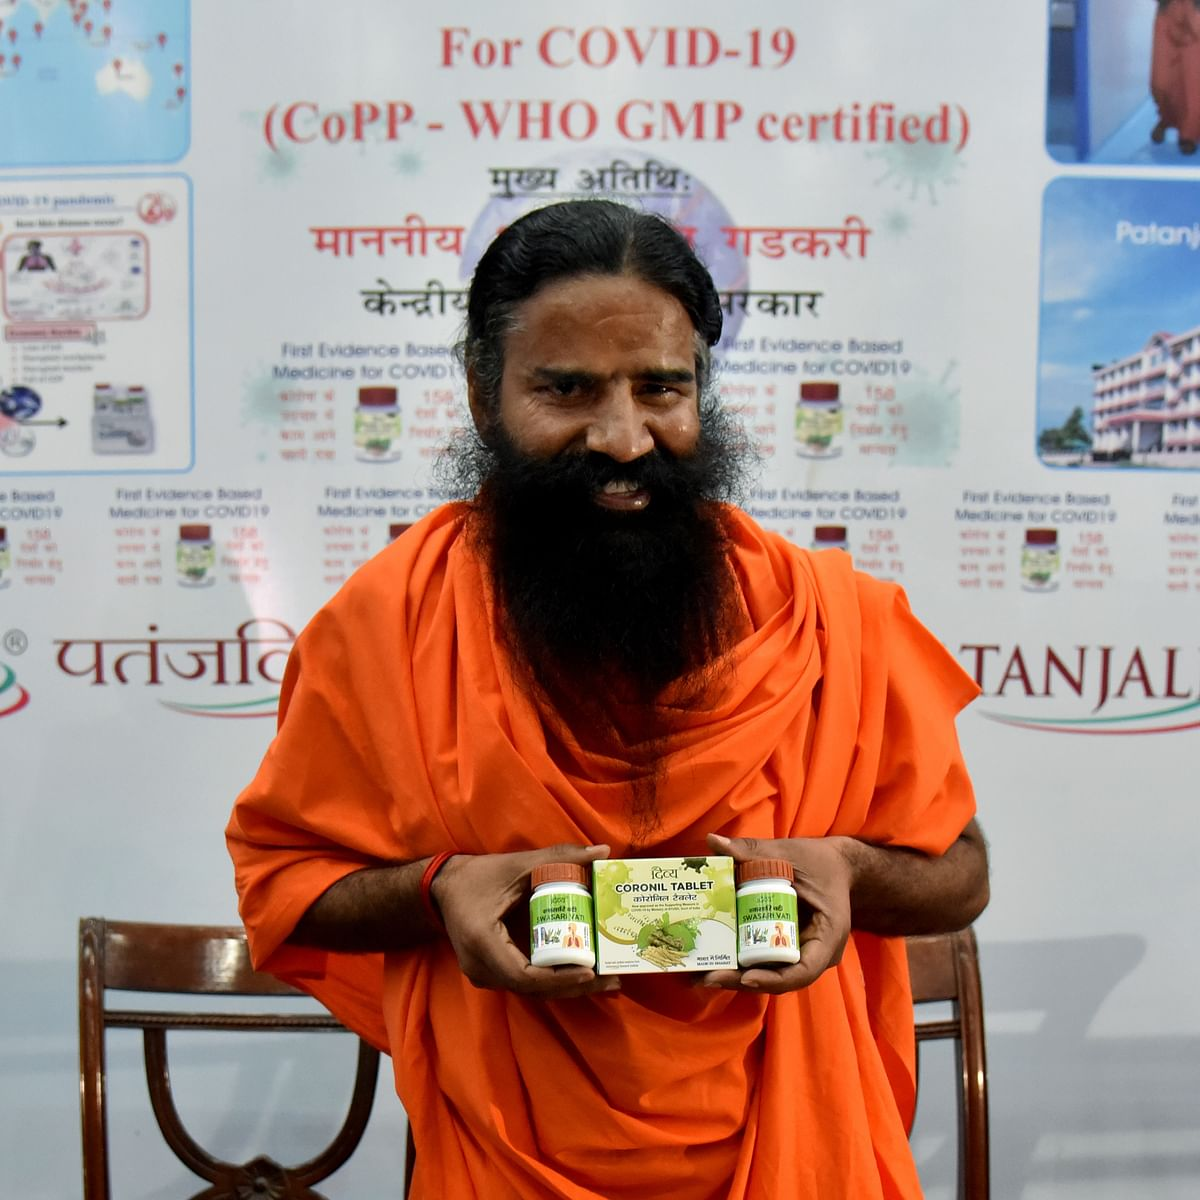 'Doctors' body has problems accepting truth': Patanjali condemns IMA for seeking explanation from Harsh Vardhan over Coronil